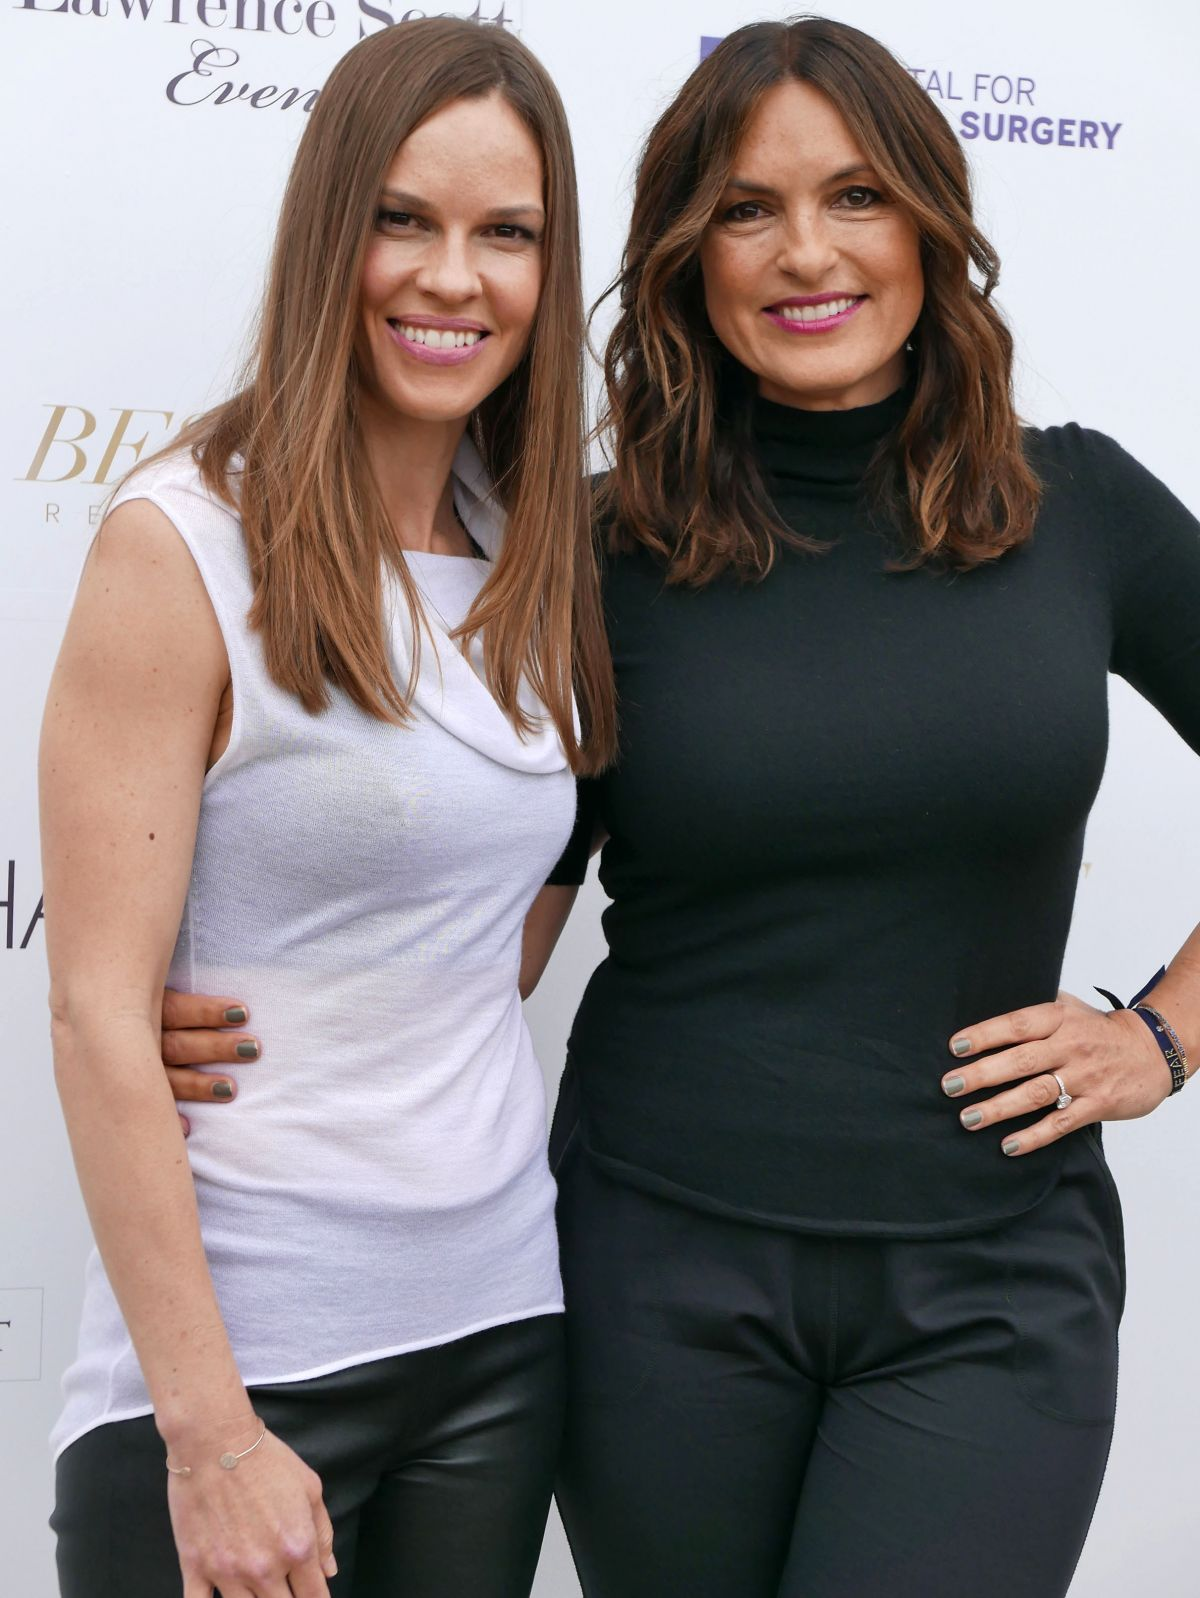 HILARY SWANK and MARISKA HARGITAY at Hamptons Magazine Memorial Day Soiree in New York 05/27/2017